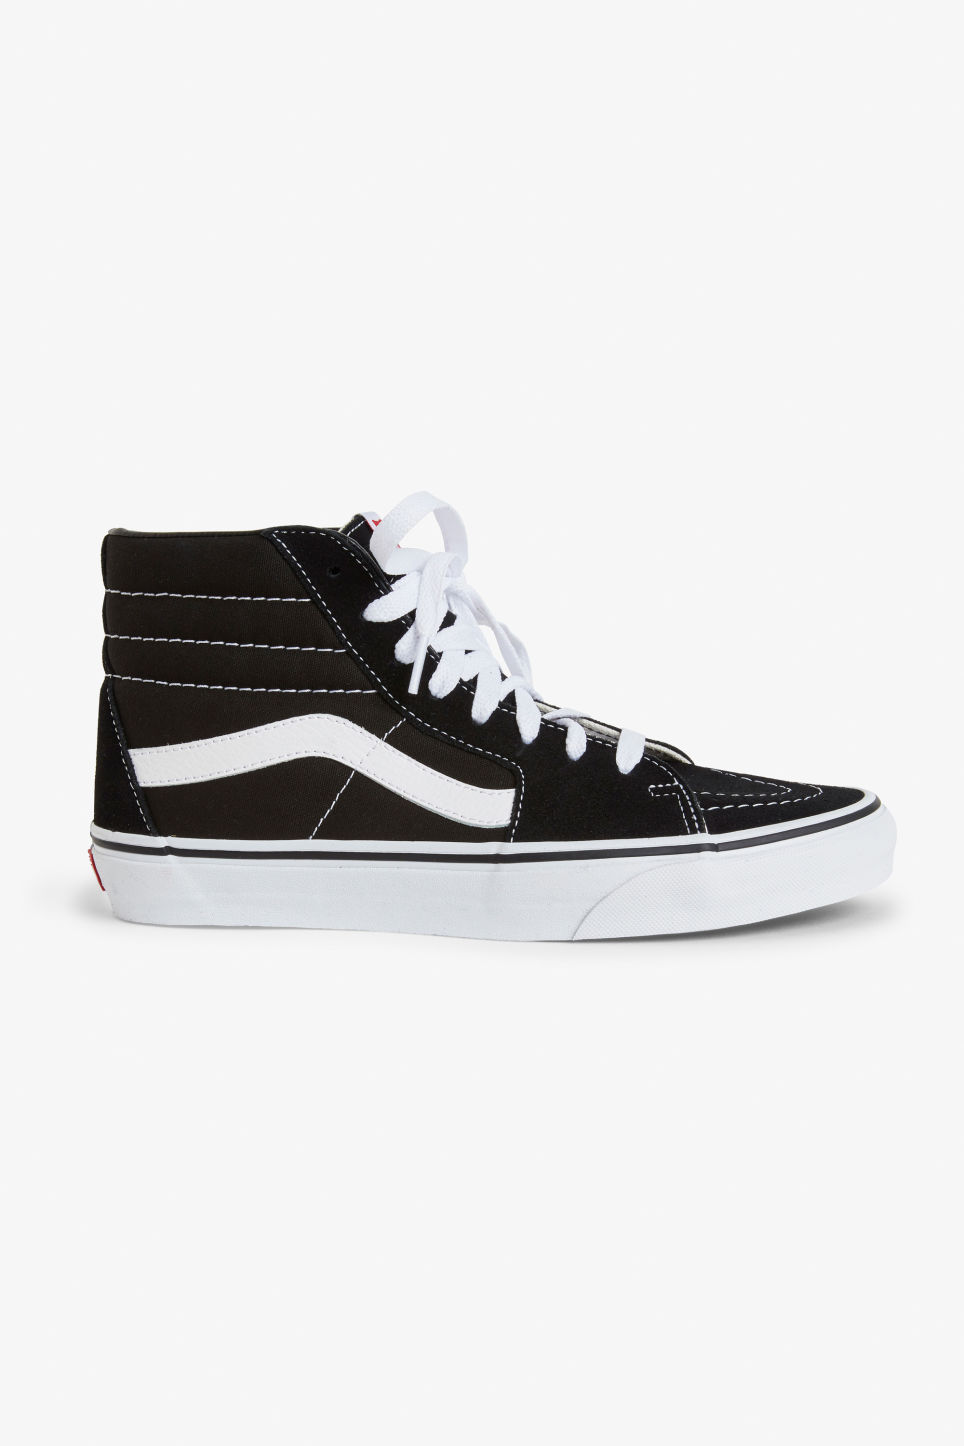 Detailed image of Monki vans sk8 hi in black